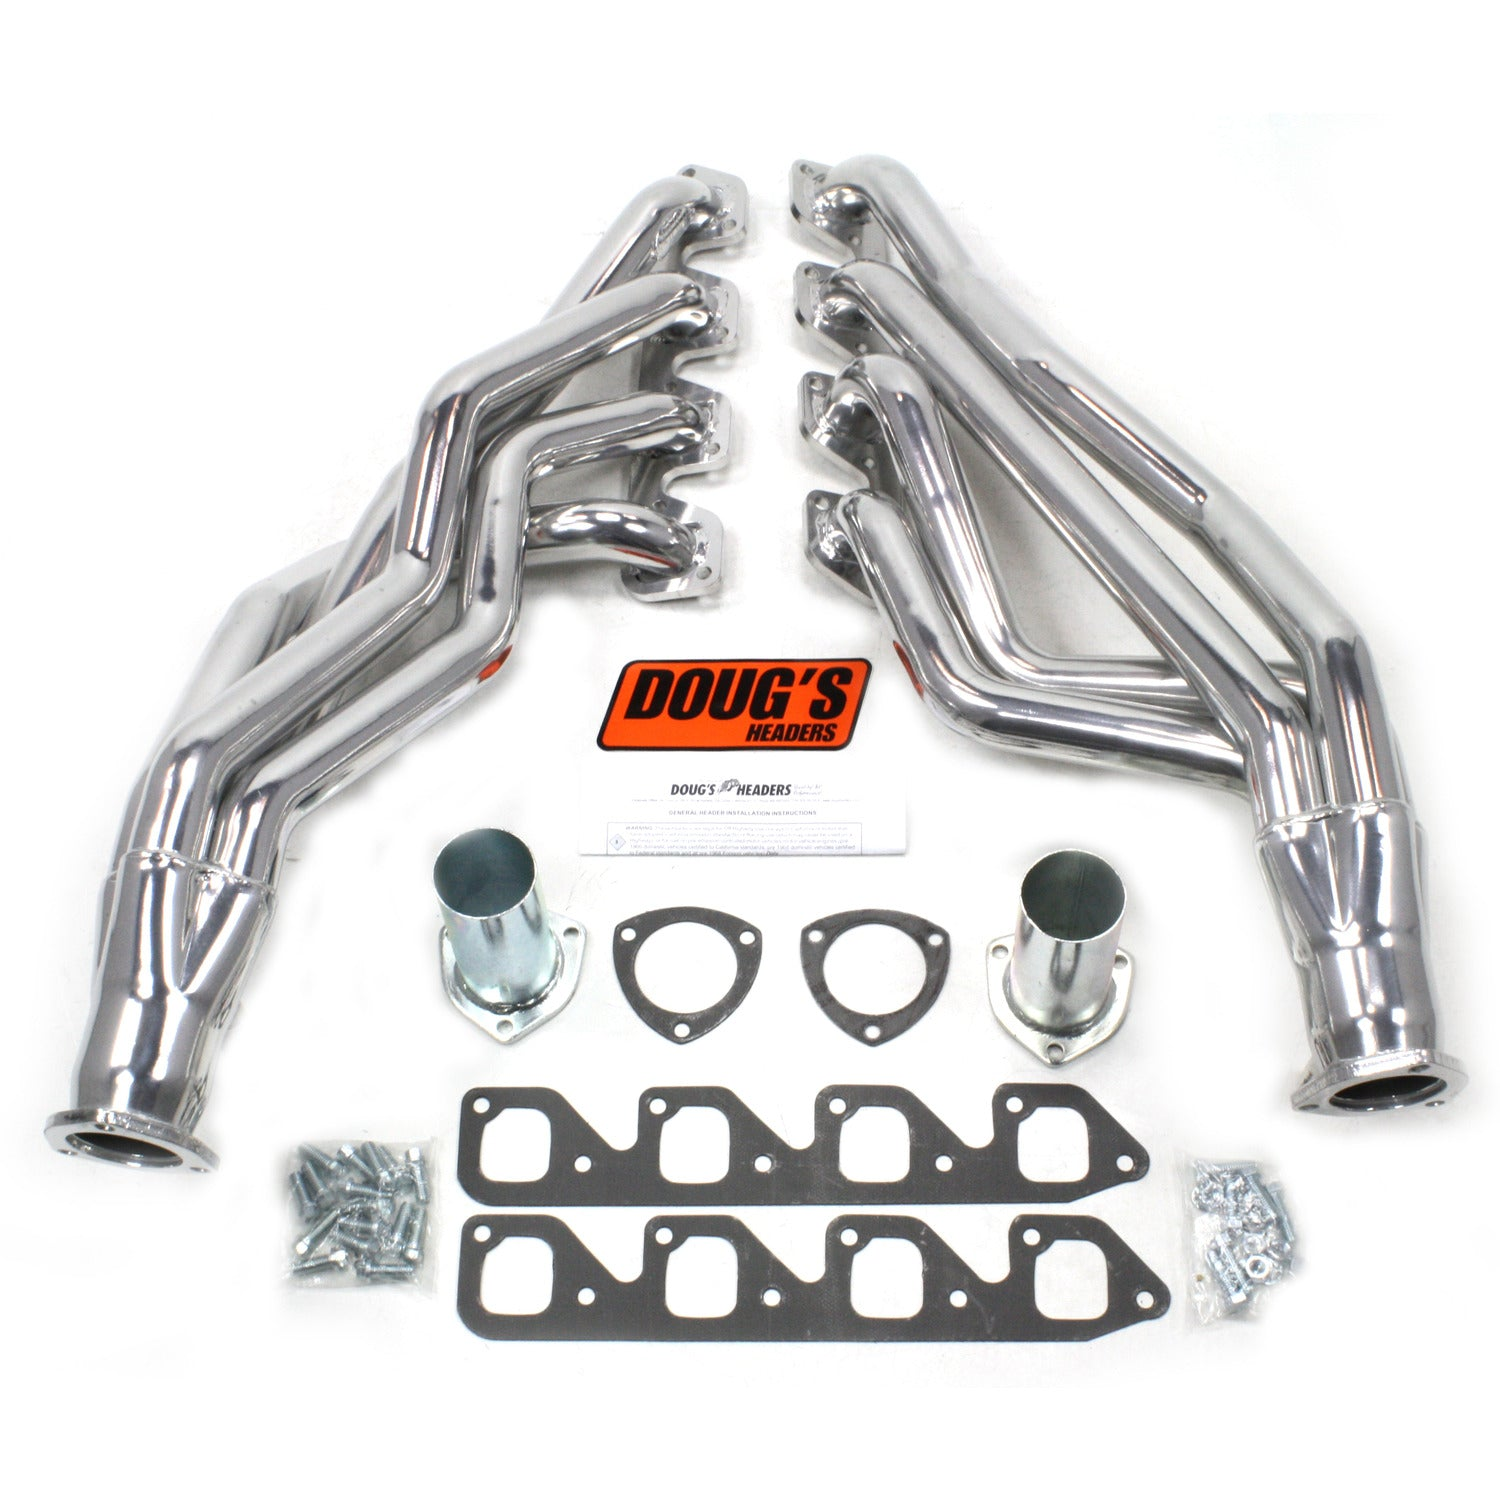 "Doug's Headers D670A4 1 3/4"" 4-Tube Full Length Header Ford Mustang 351C 67-70 Metallic Ceramic Coating"